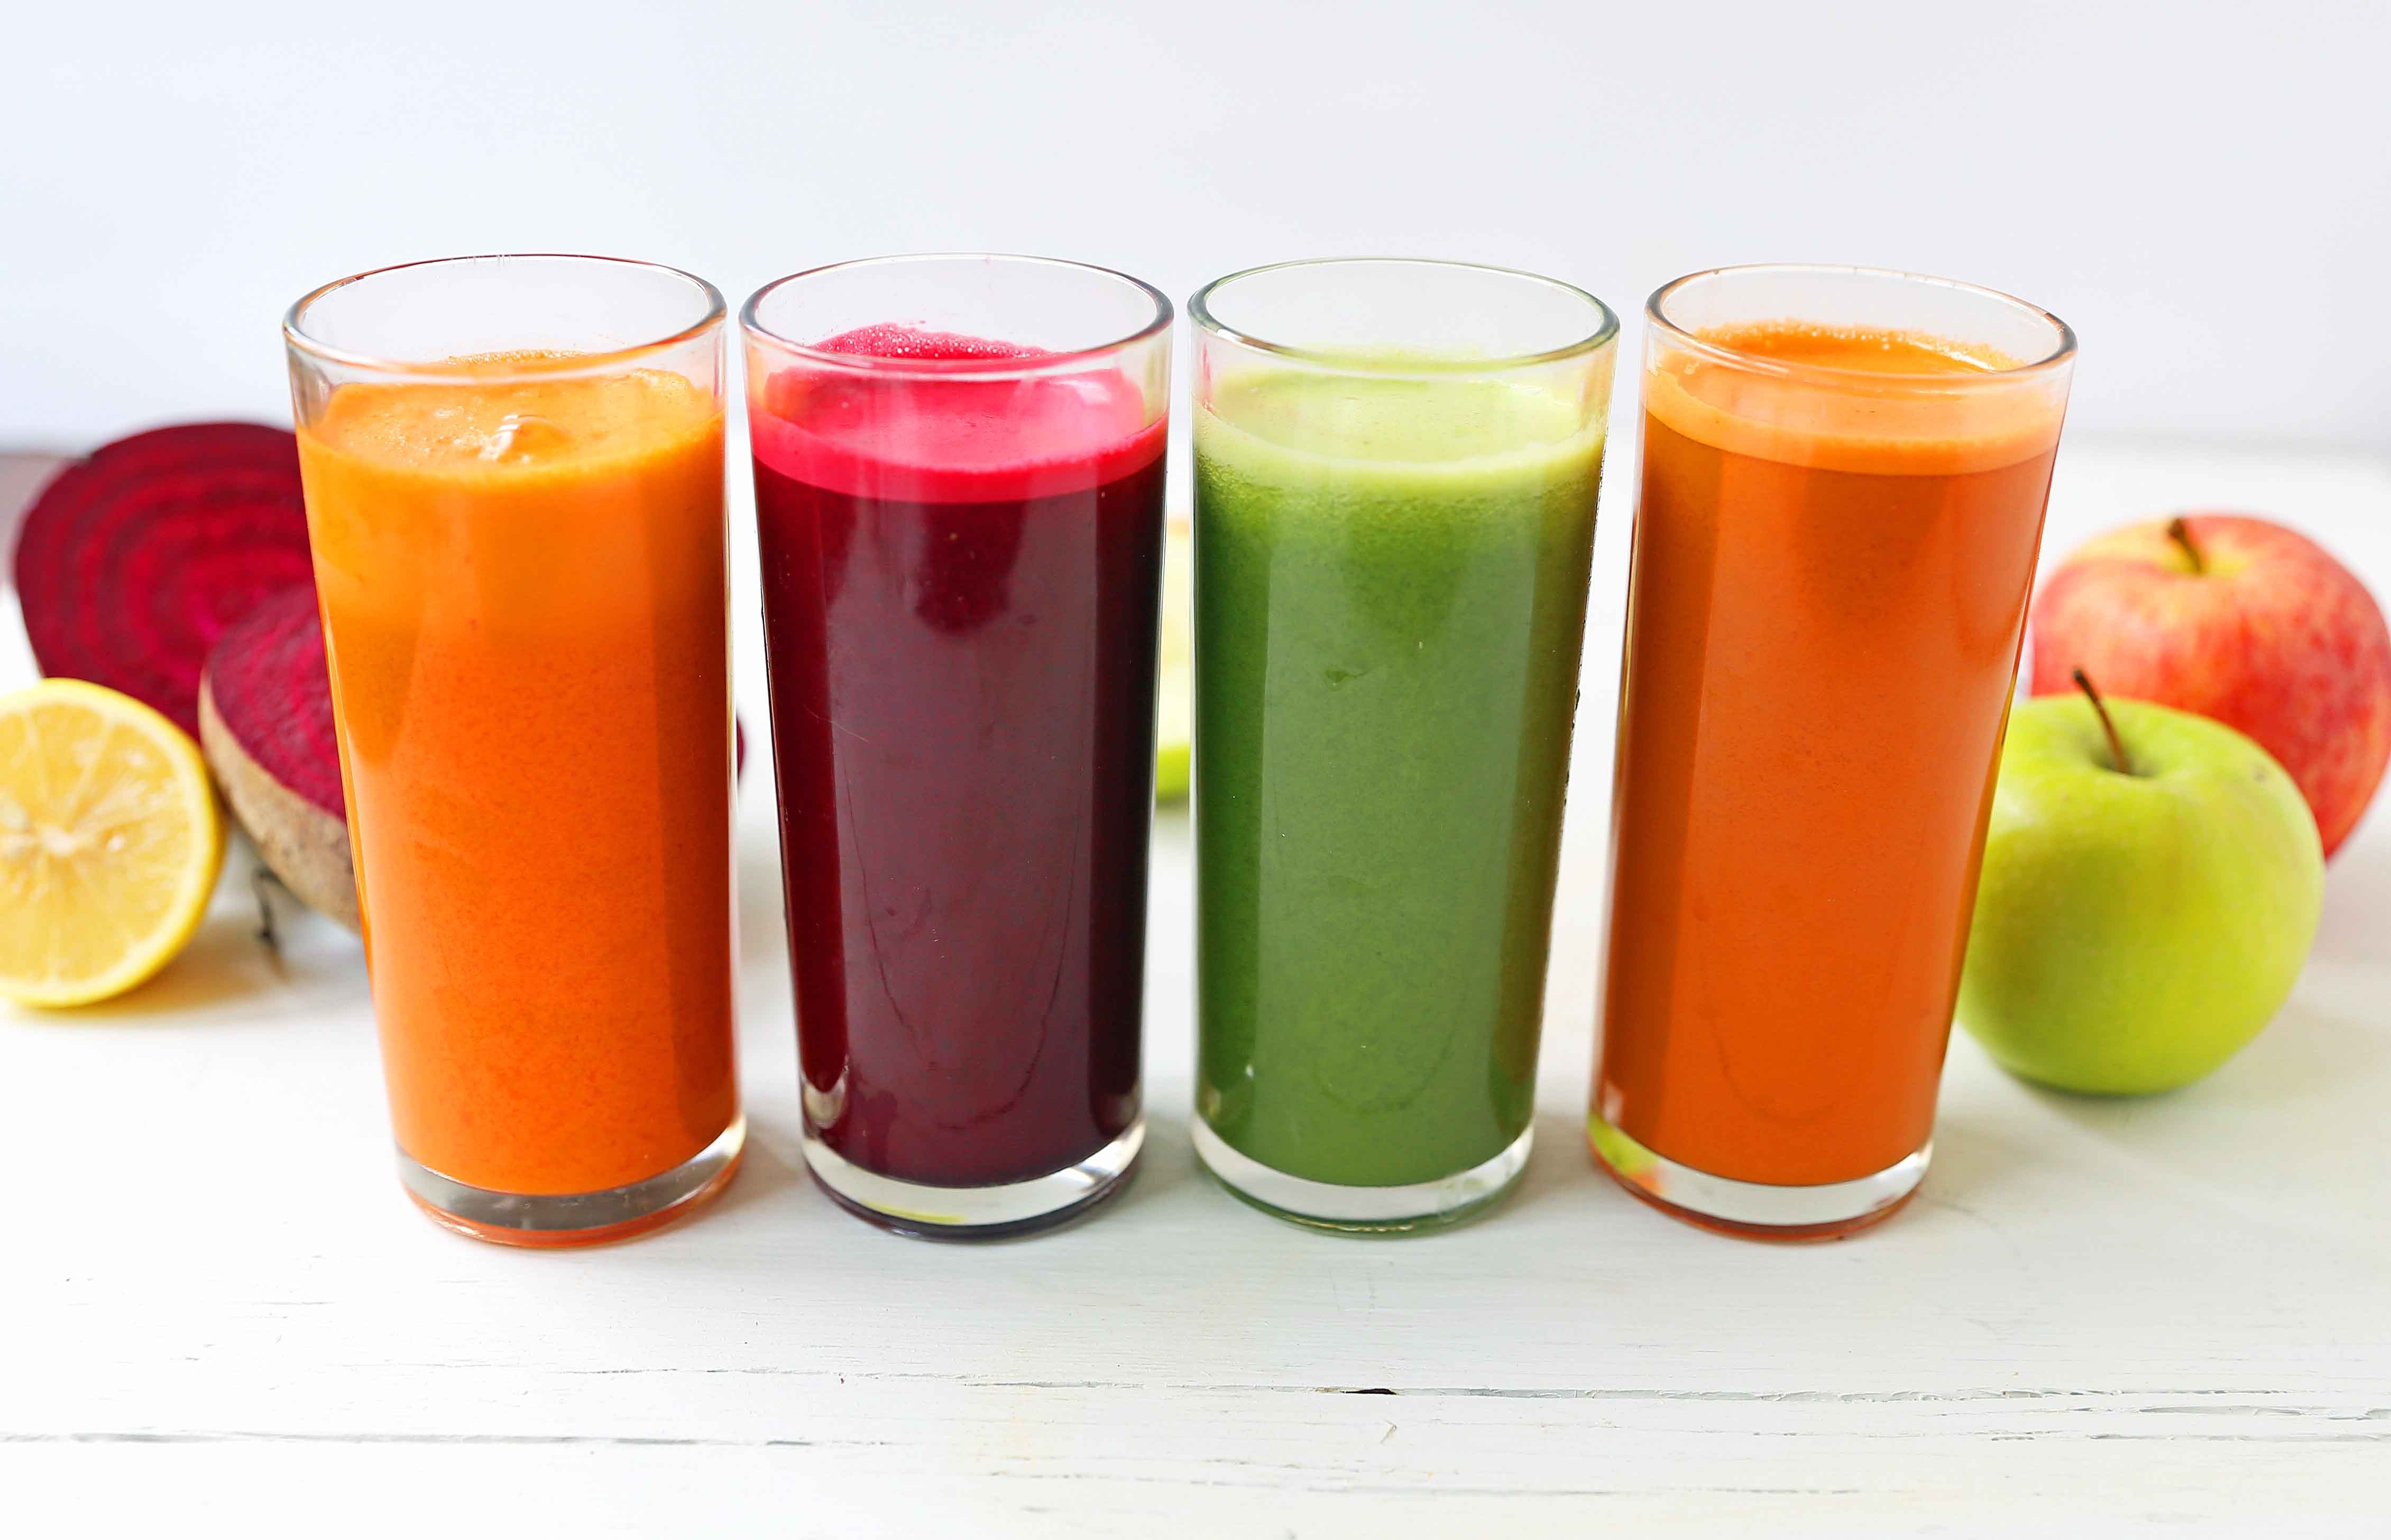 Healthy Juice Cleanse Recipes 1 - Best Fruits Combinations for Juice Diets